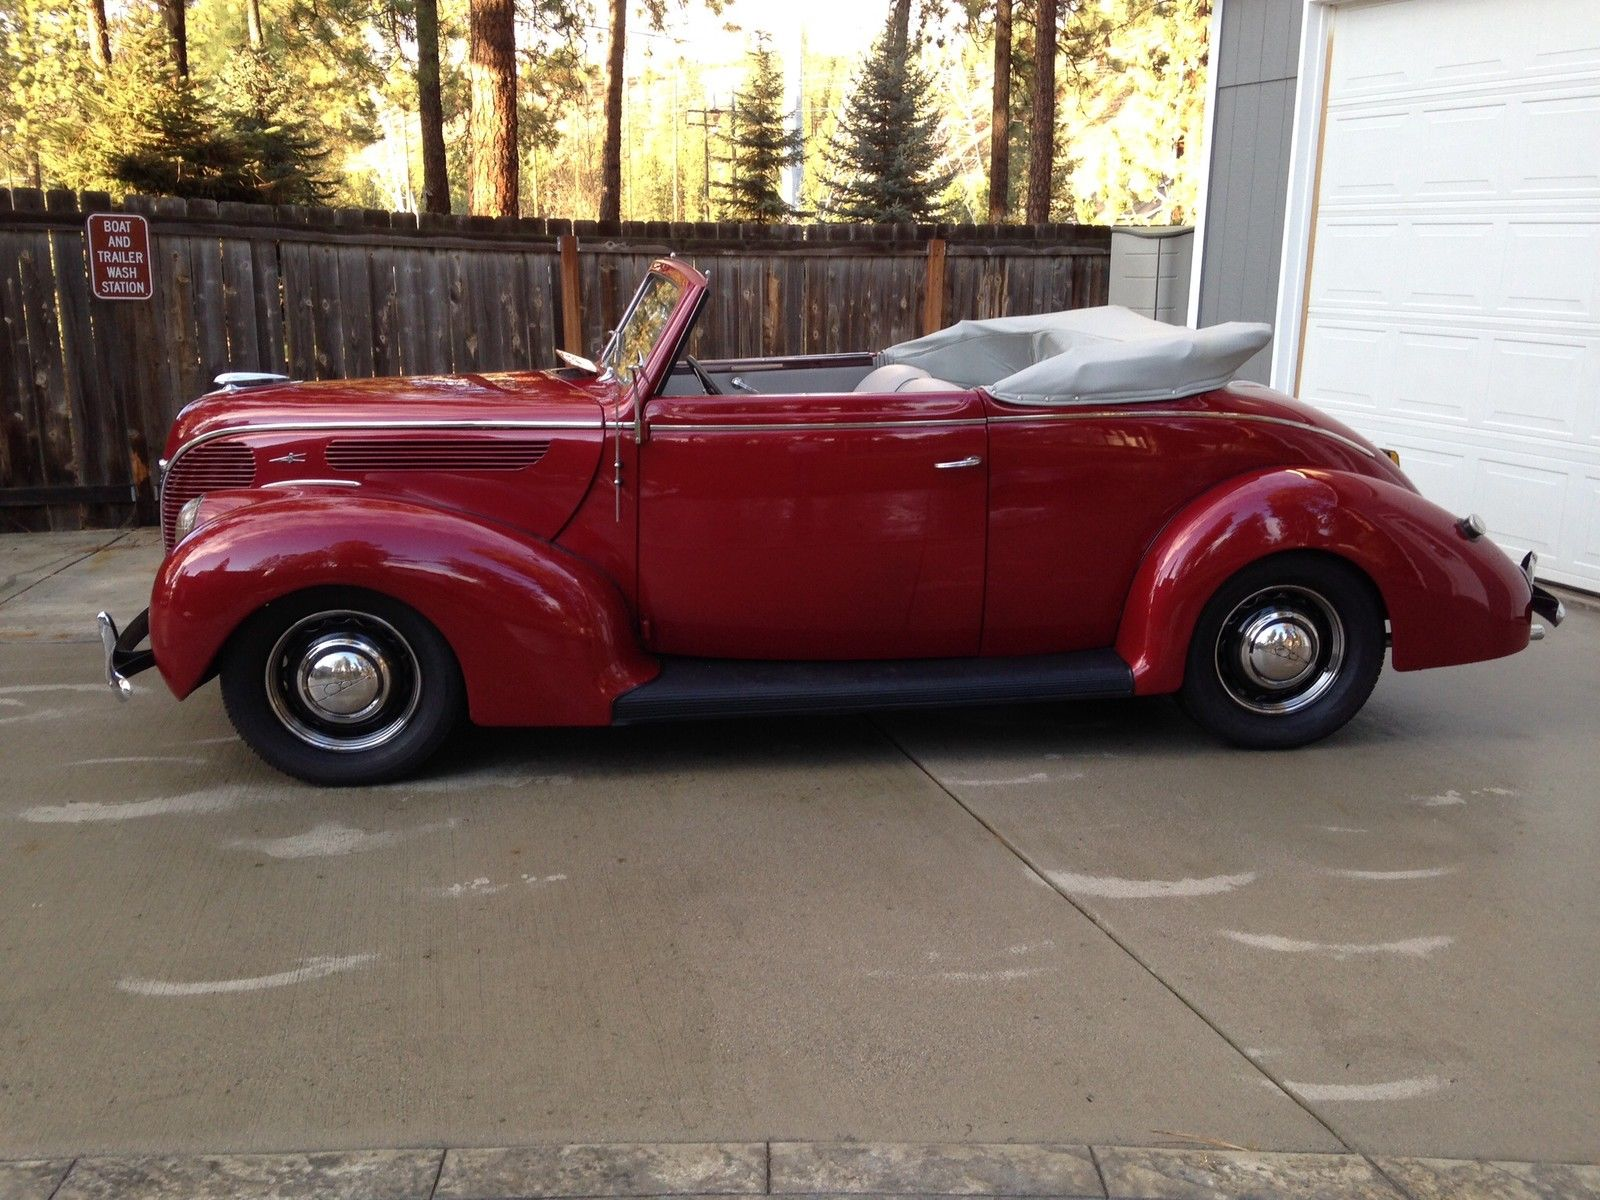 One Very Rare 1938 Ford Deluxe Convertible Club Coupe